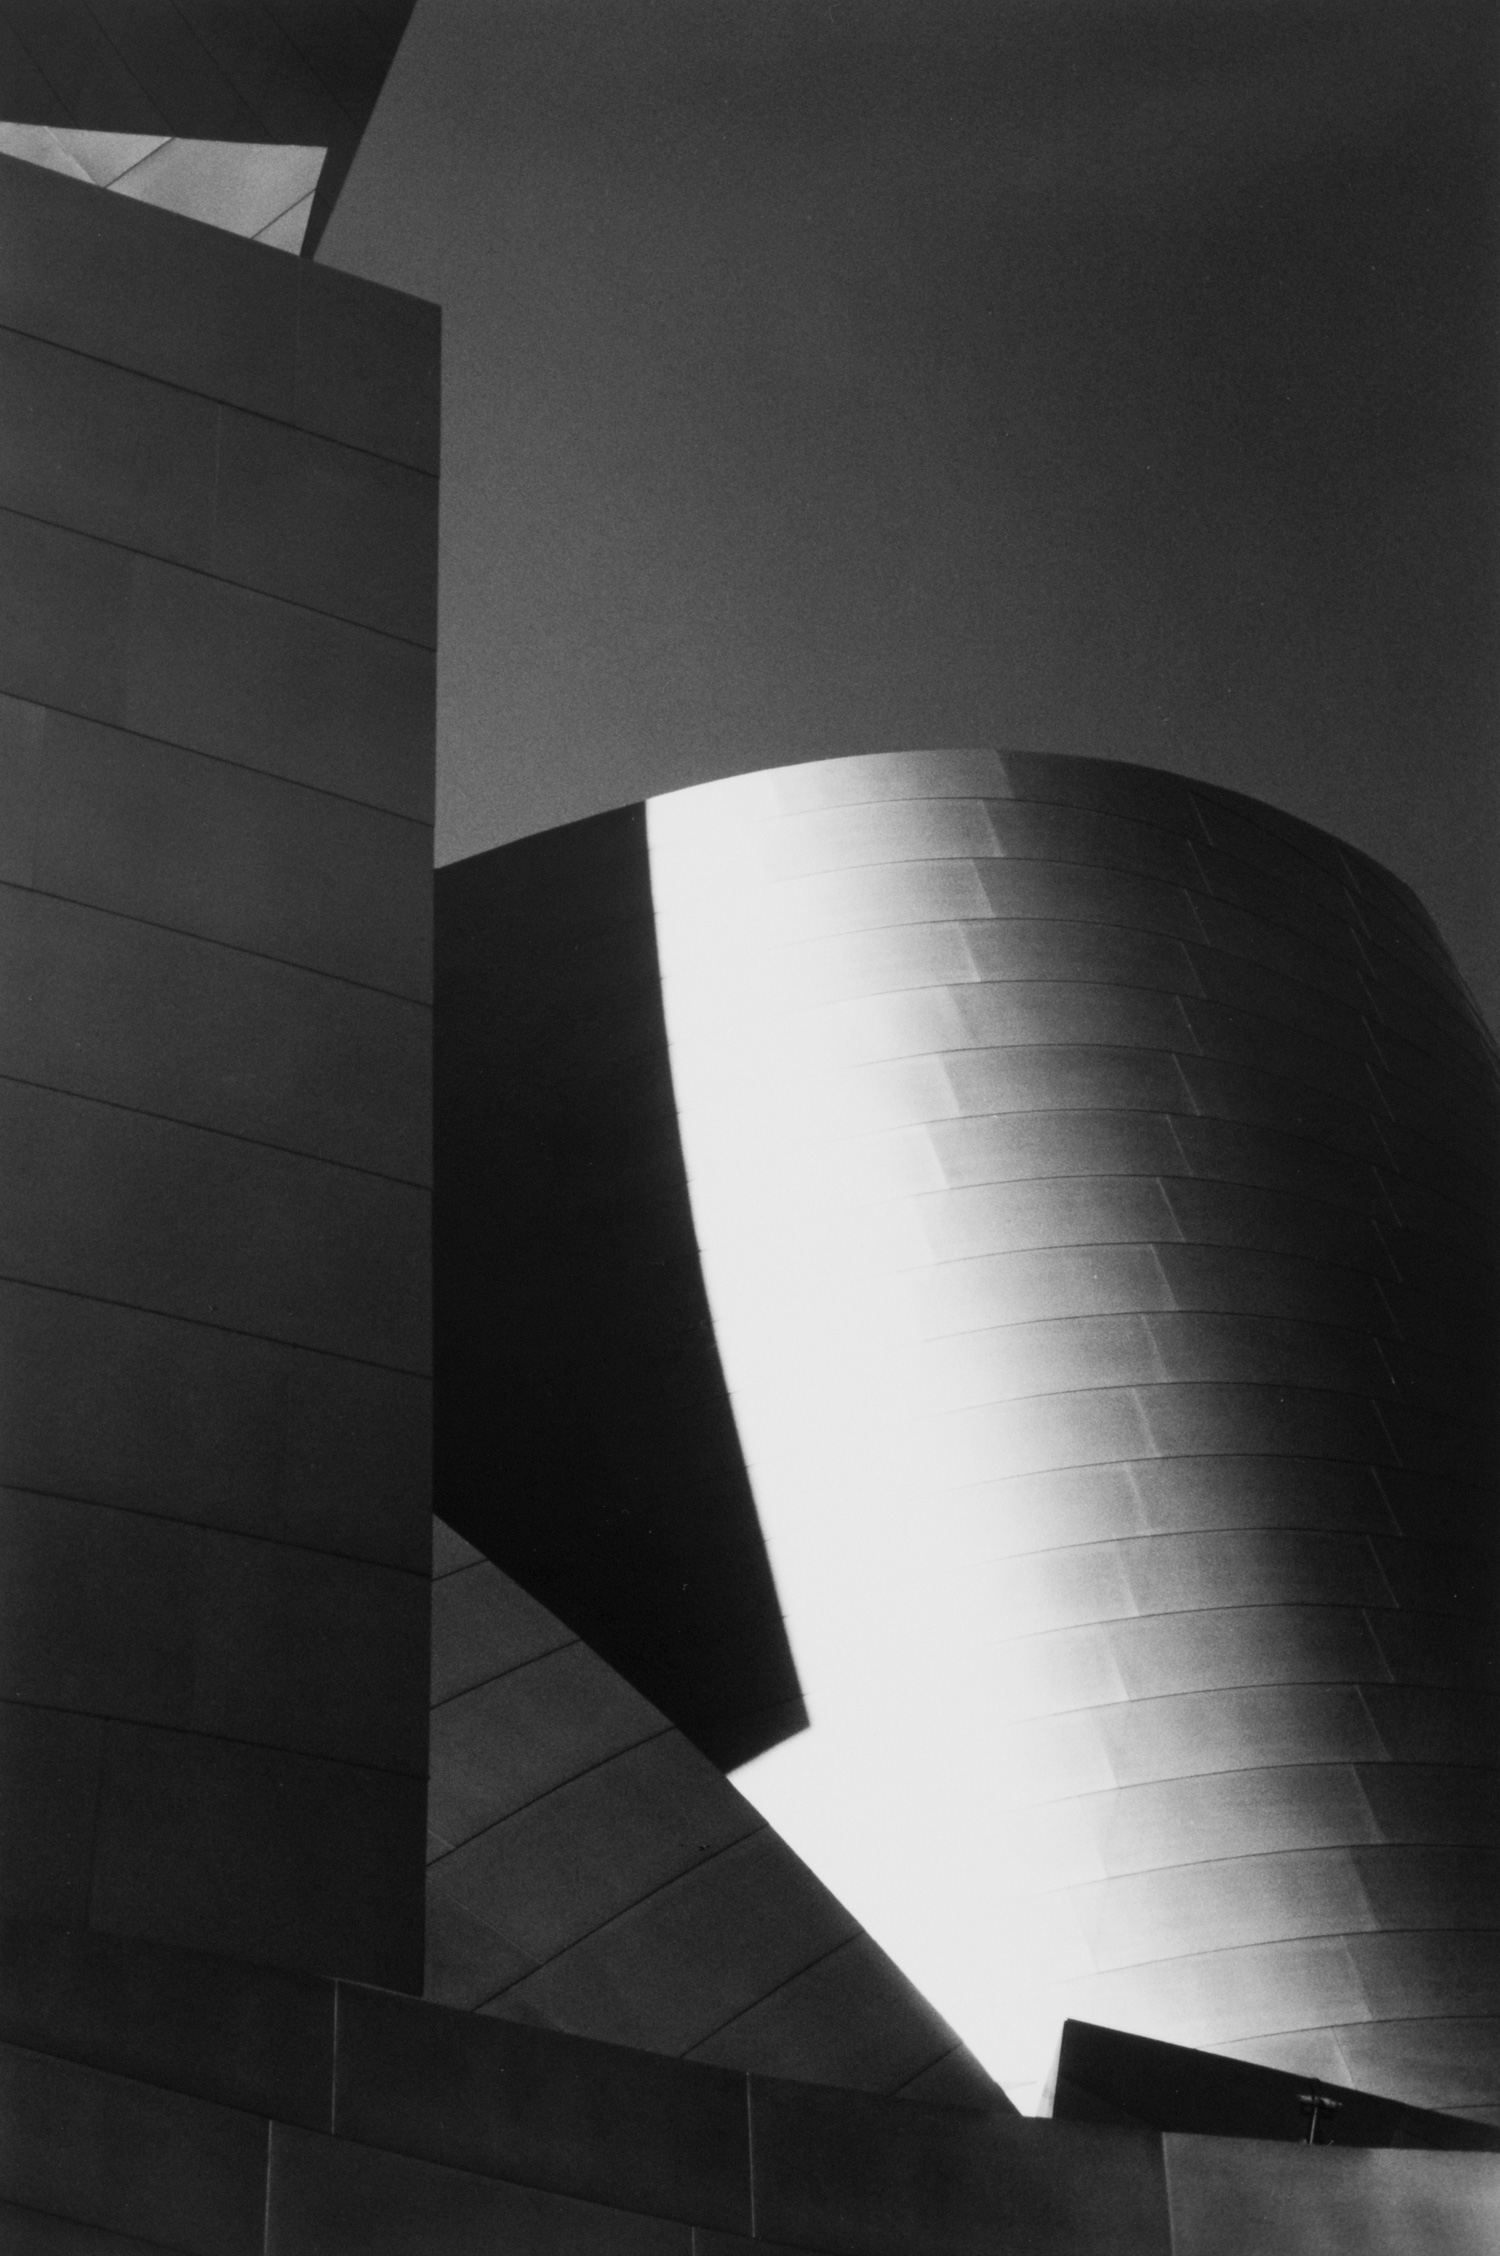 Frank Gehry's Vision III